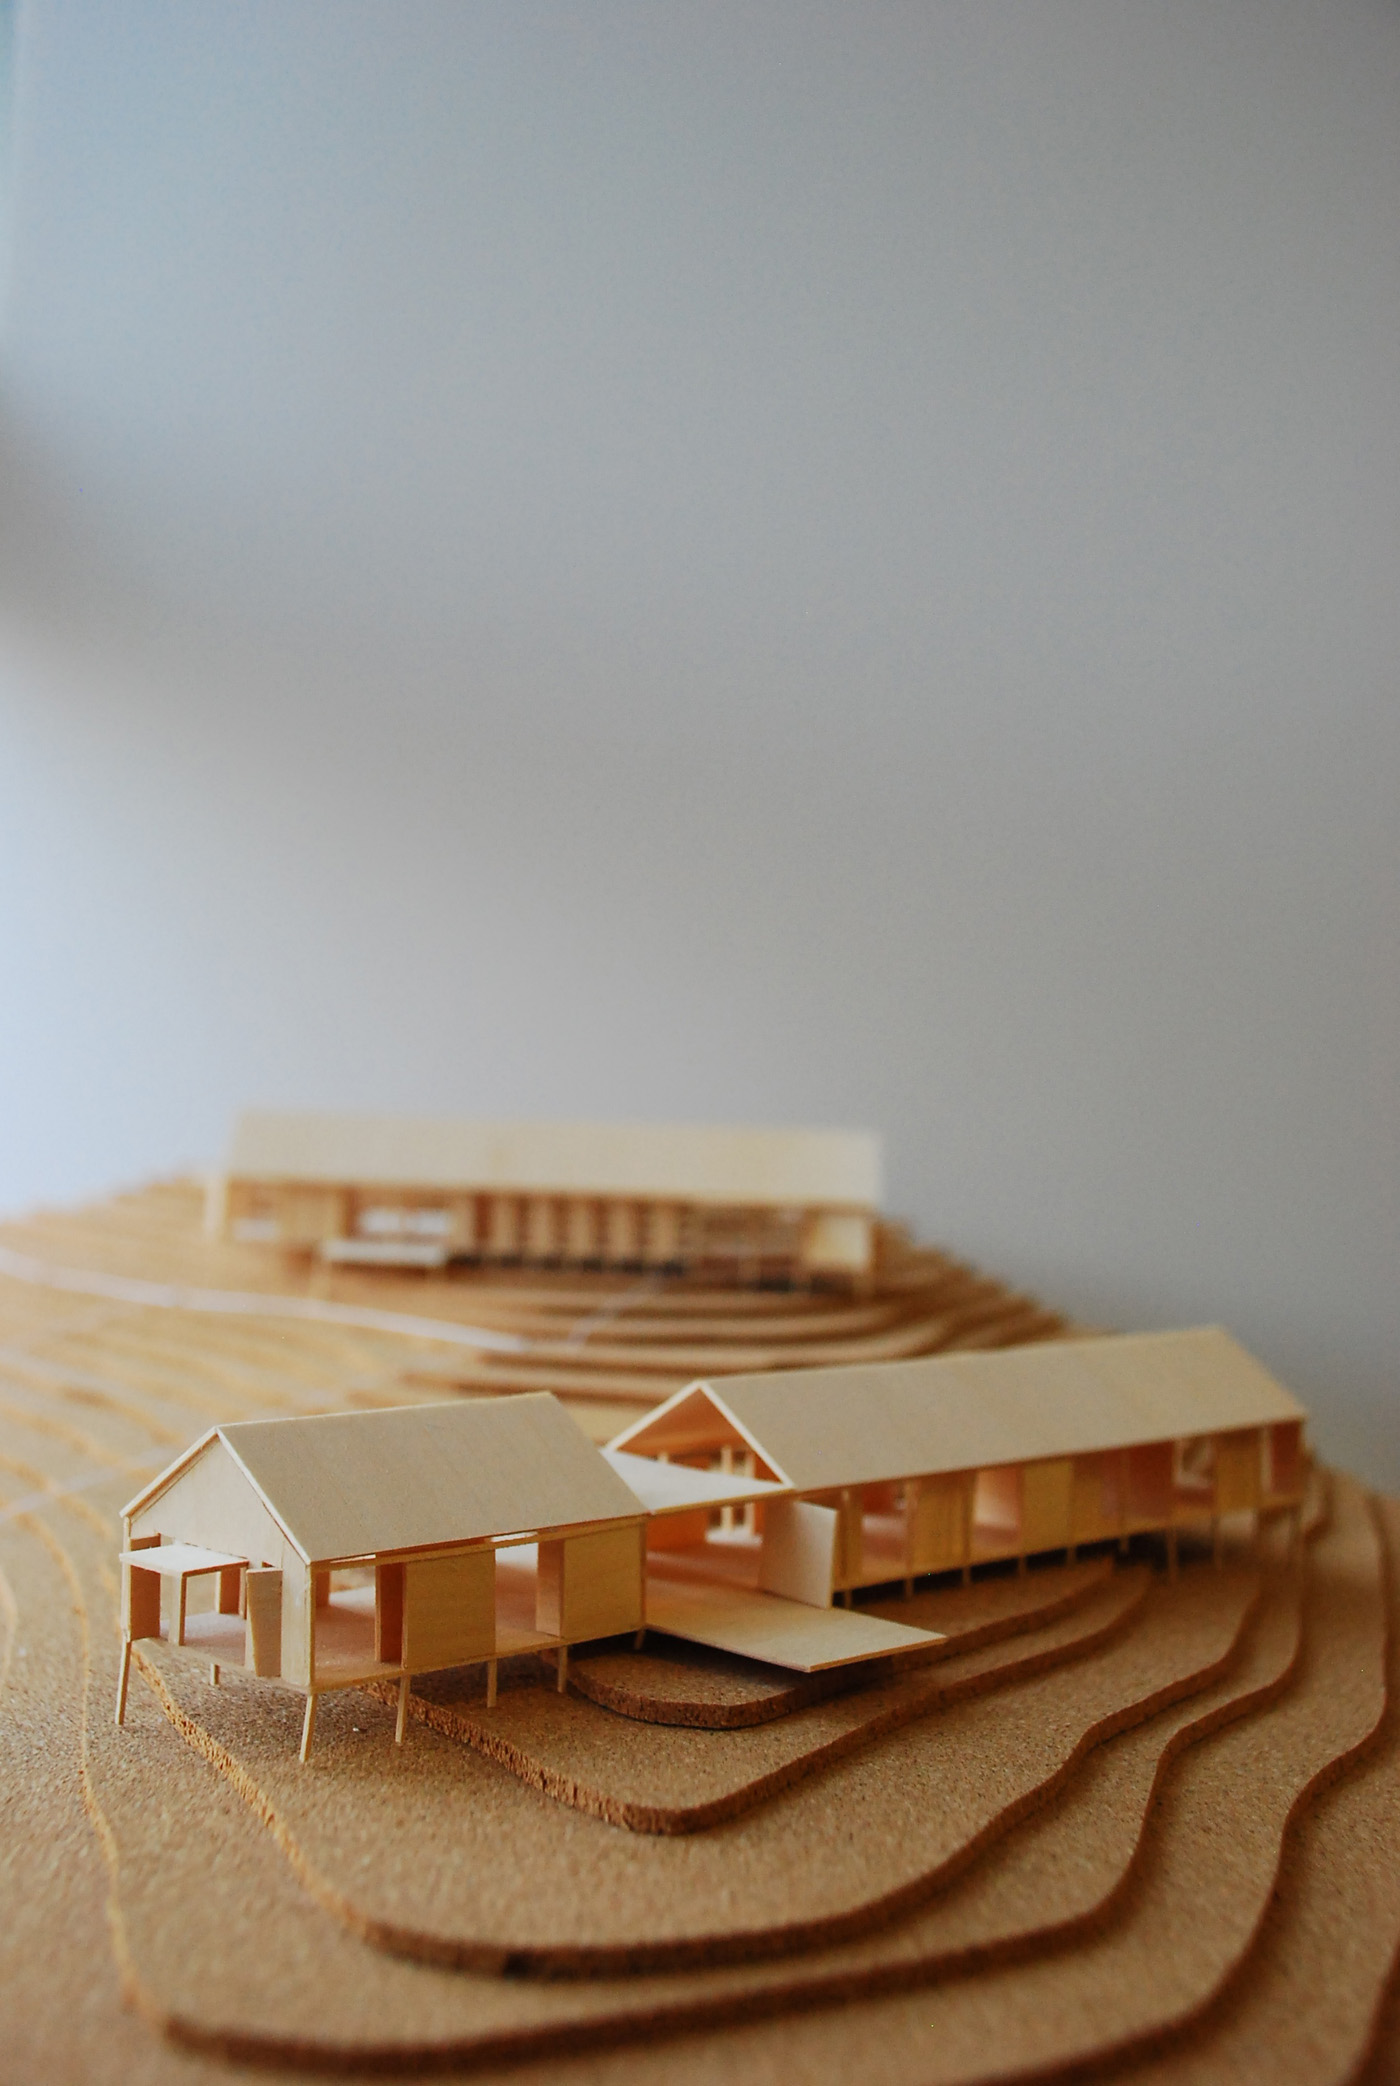 Gloucester Farmhouse by award winning residential architecture firm Sam Crawford Architects. Balsa wood house model on cork sheets contours